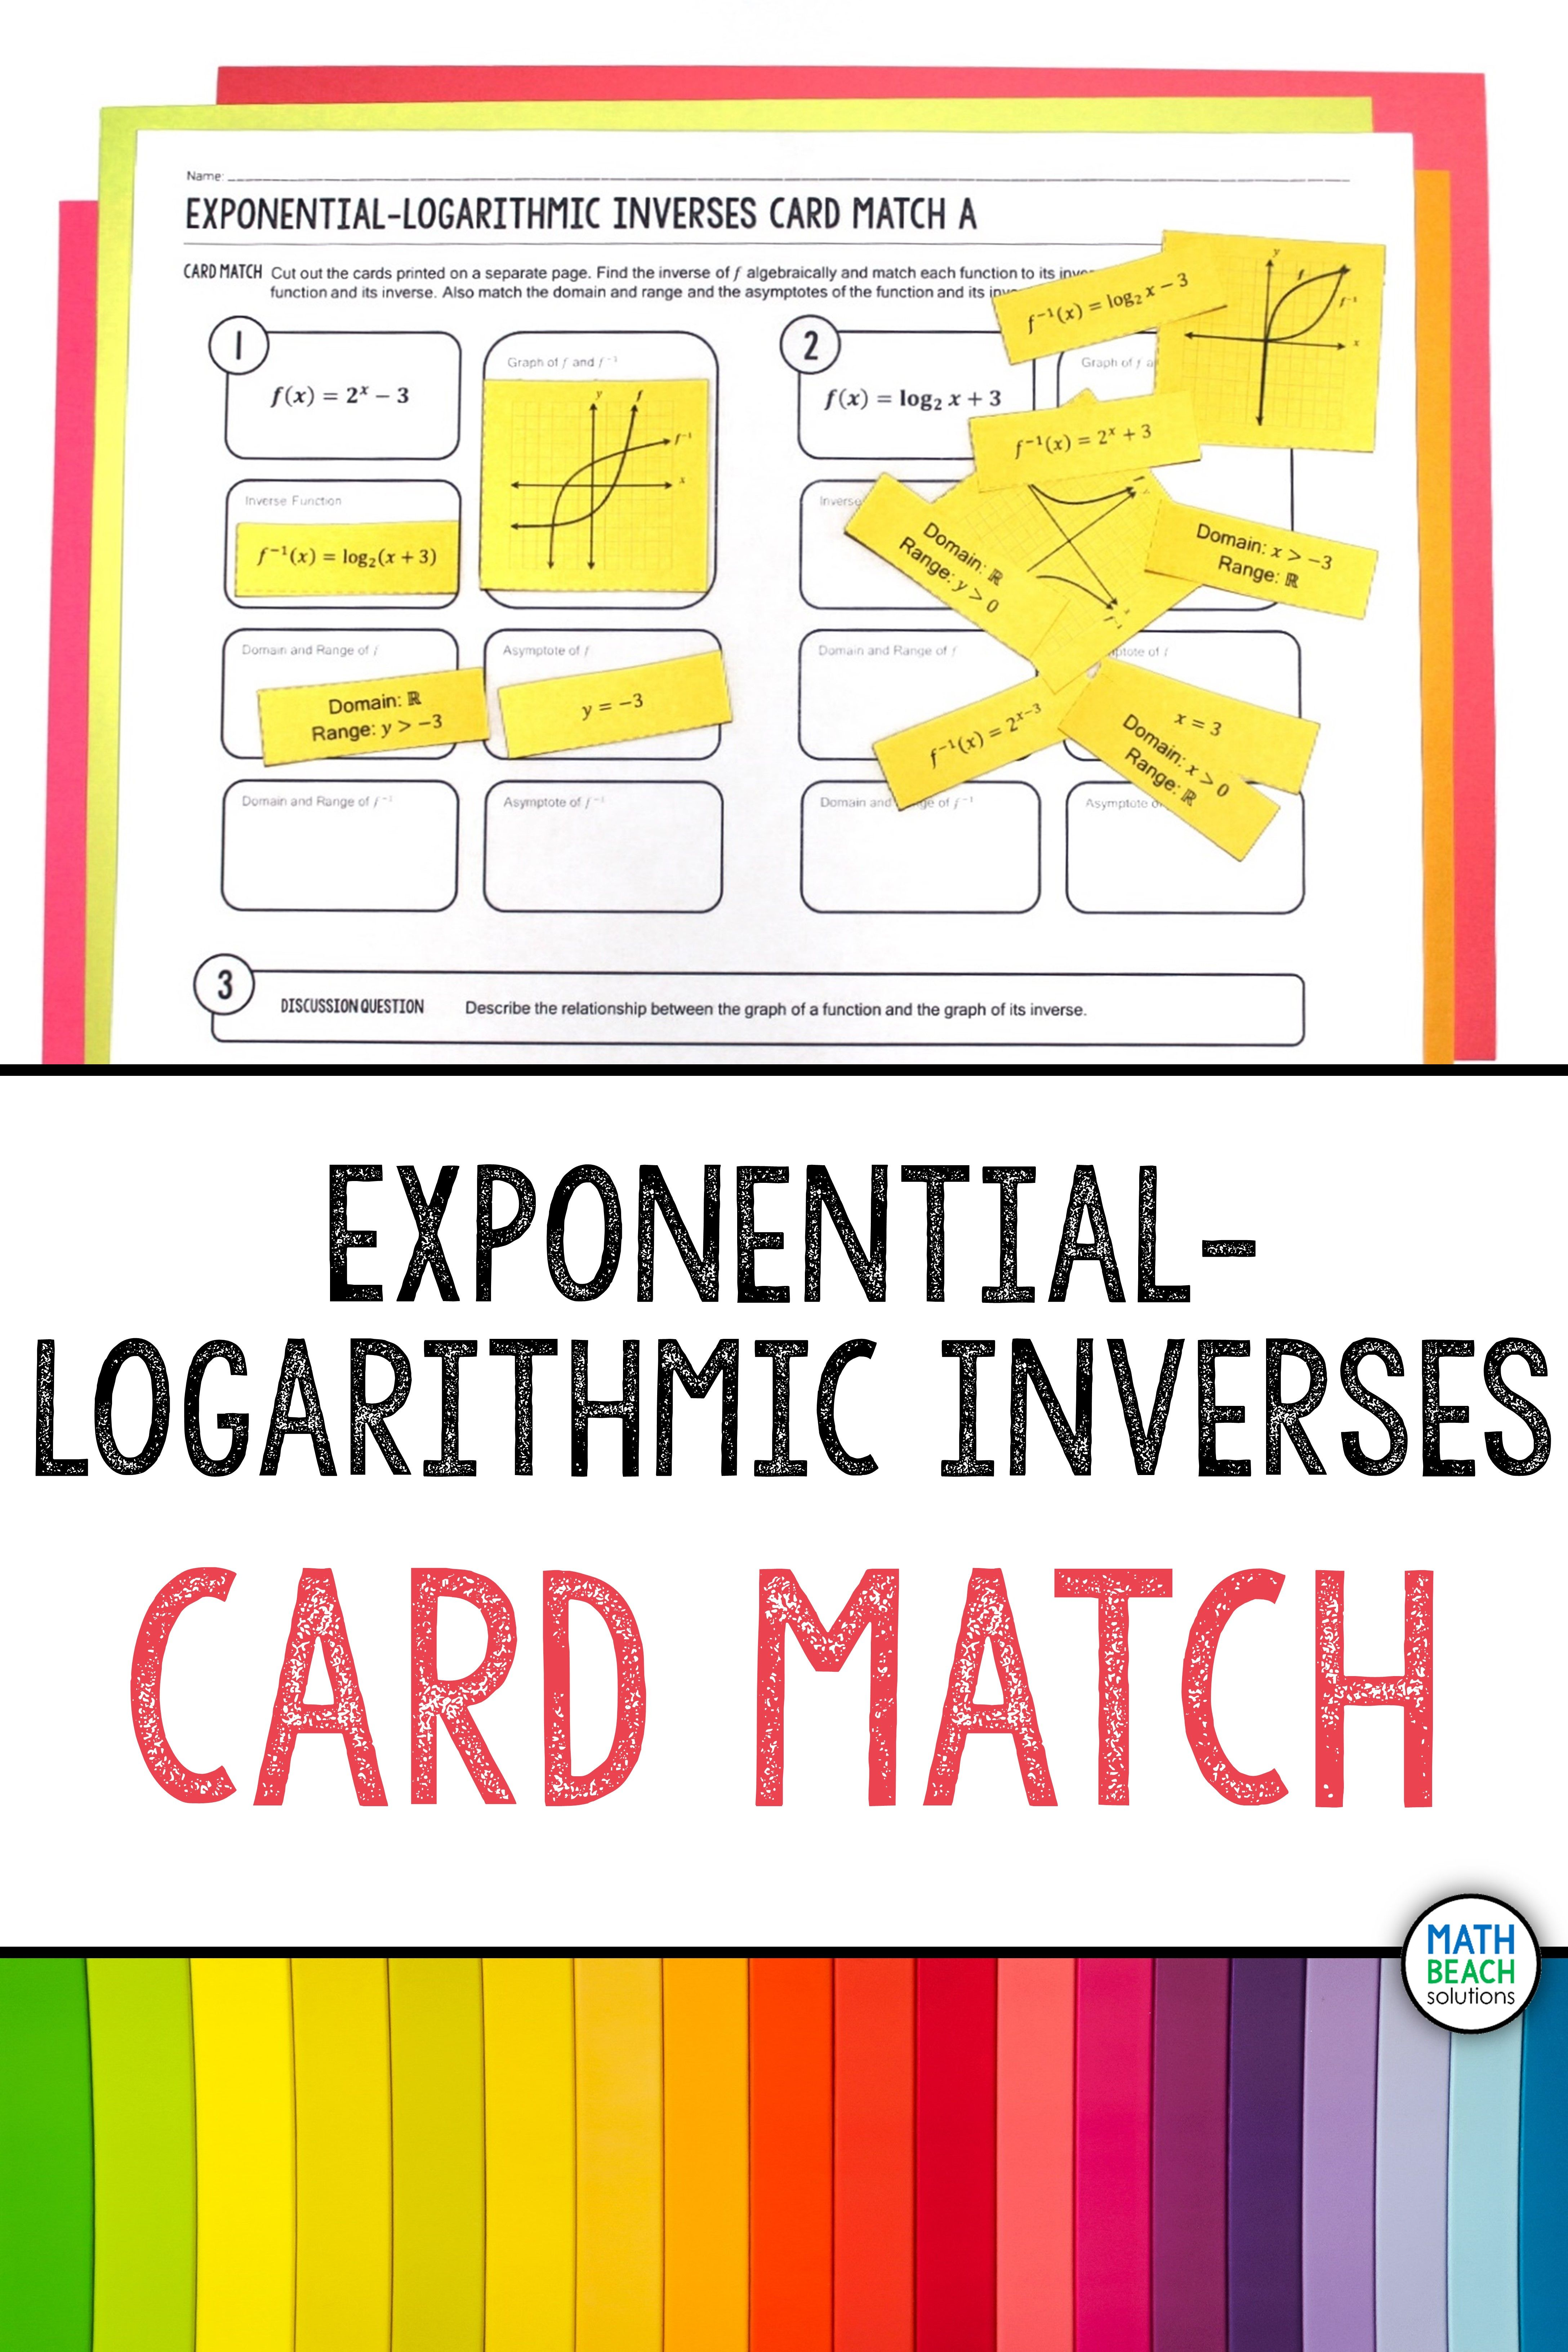 Exponential Logarithmic Inverses Card Match Activity